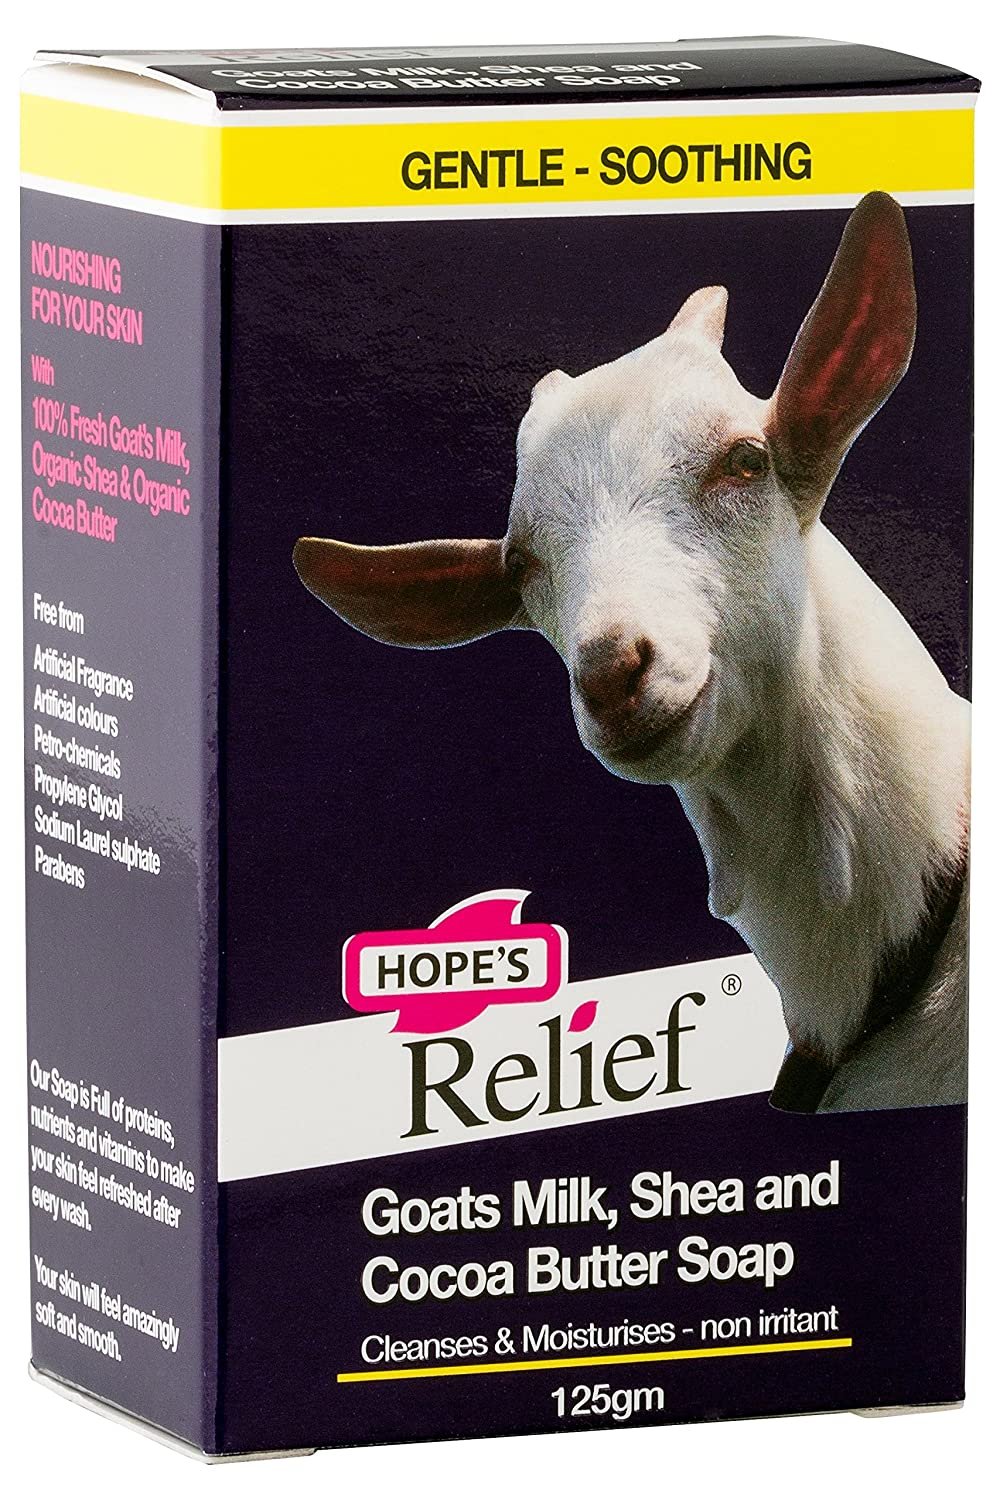 Hope's Relief Goat's Milk Soap - natural formula for skin prone eczema, psoriasis and dermatitis (babies, children, adults) Mahi Naturals Ltd HOPESGOSOAP